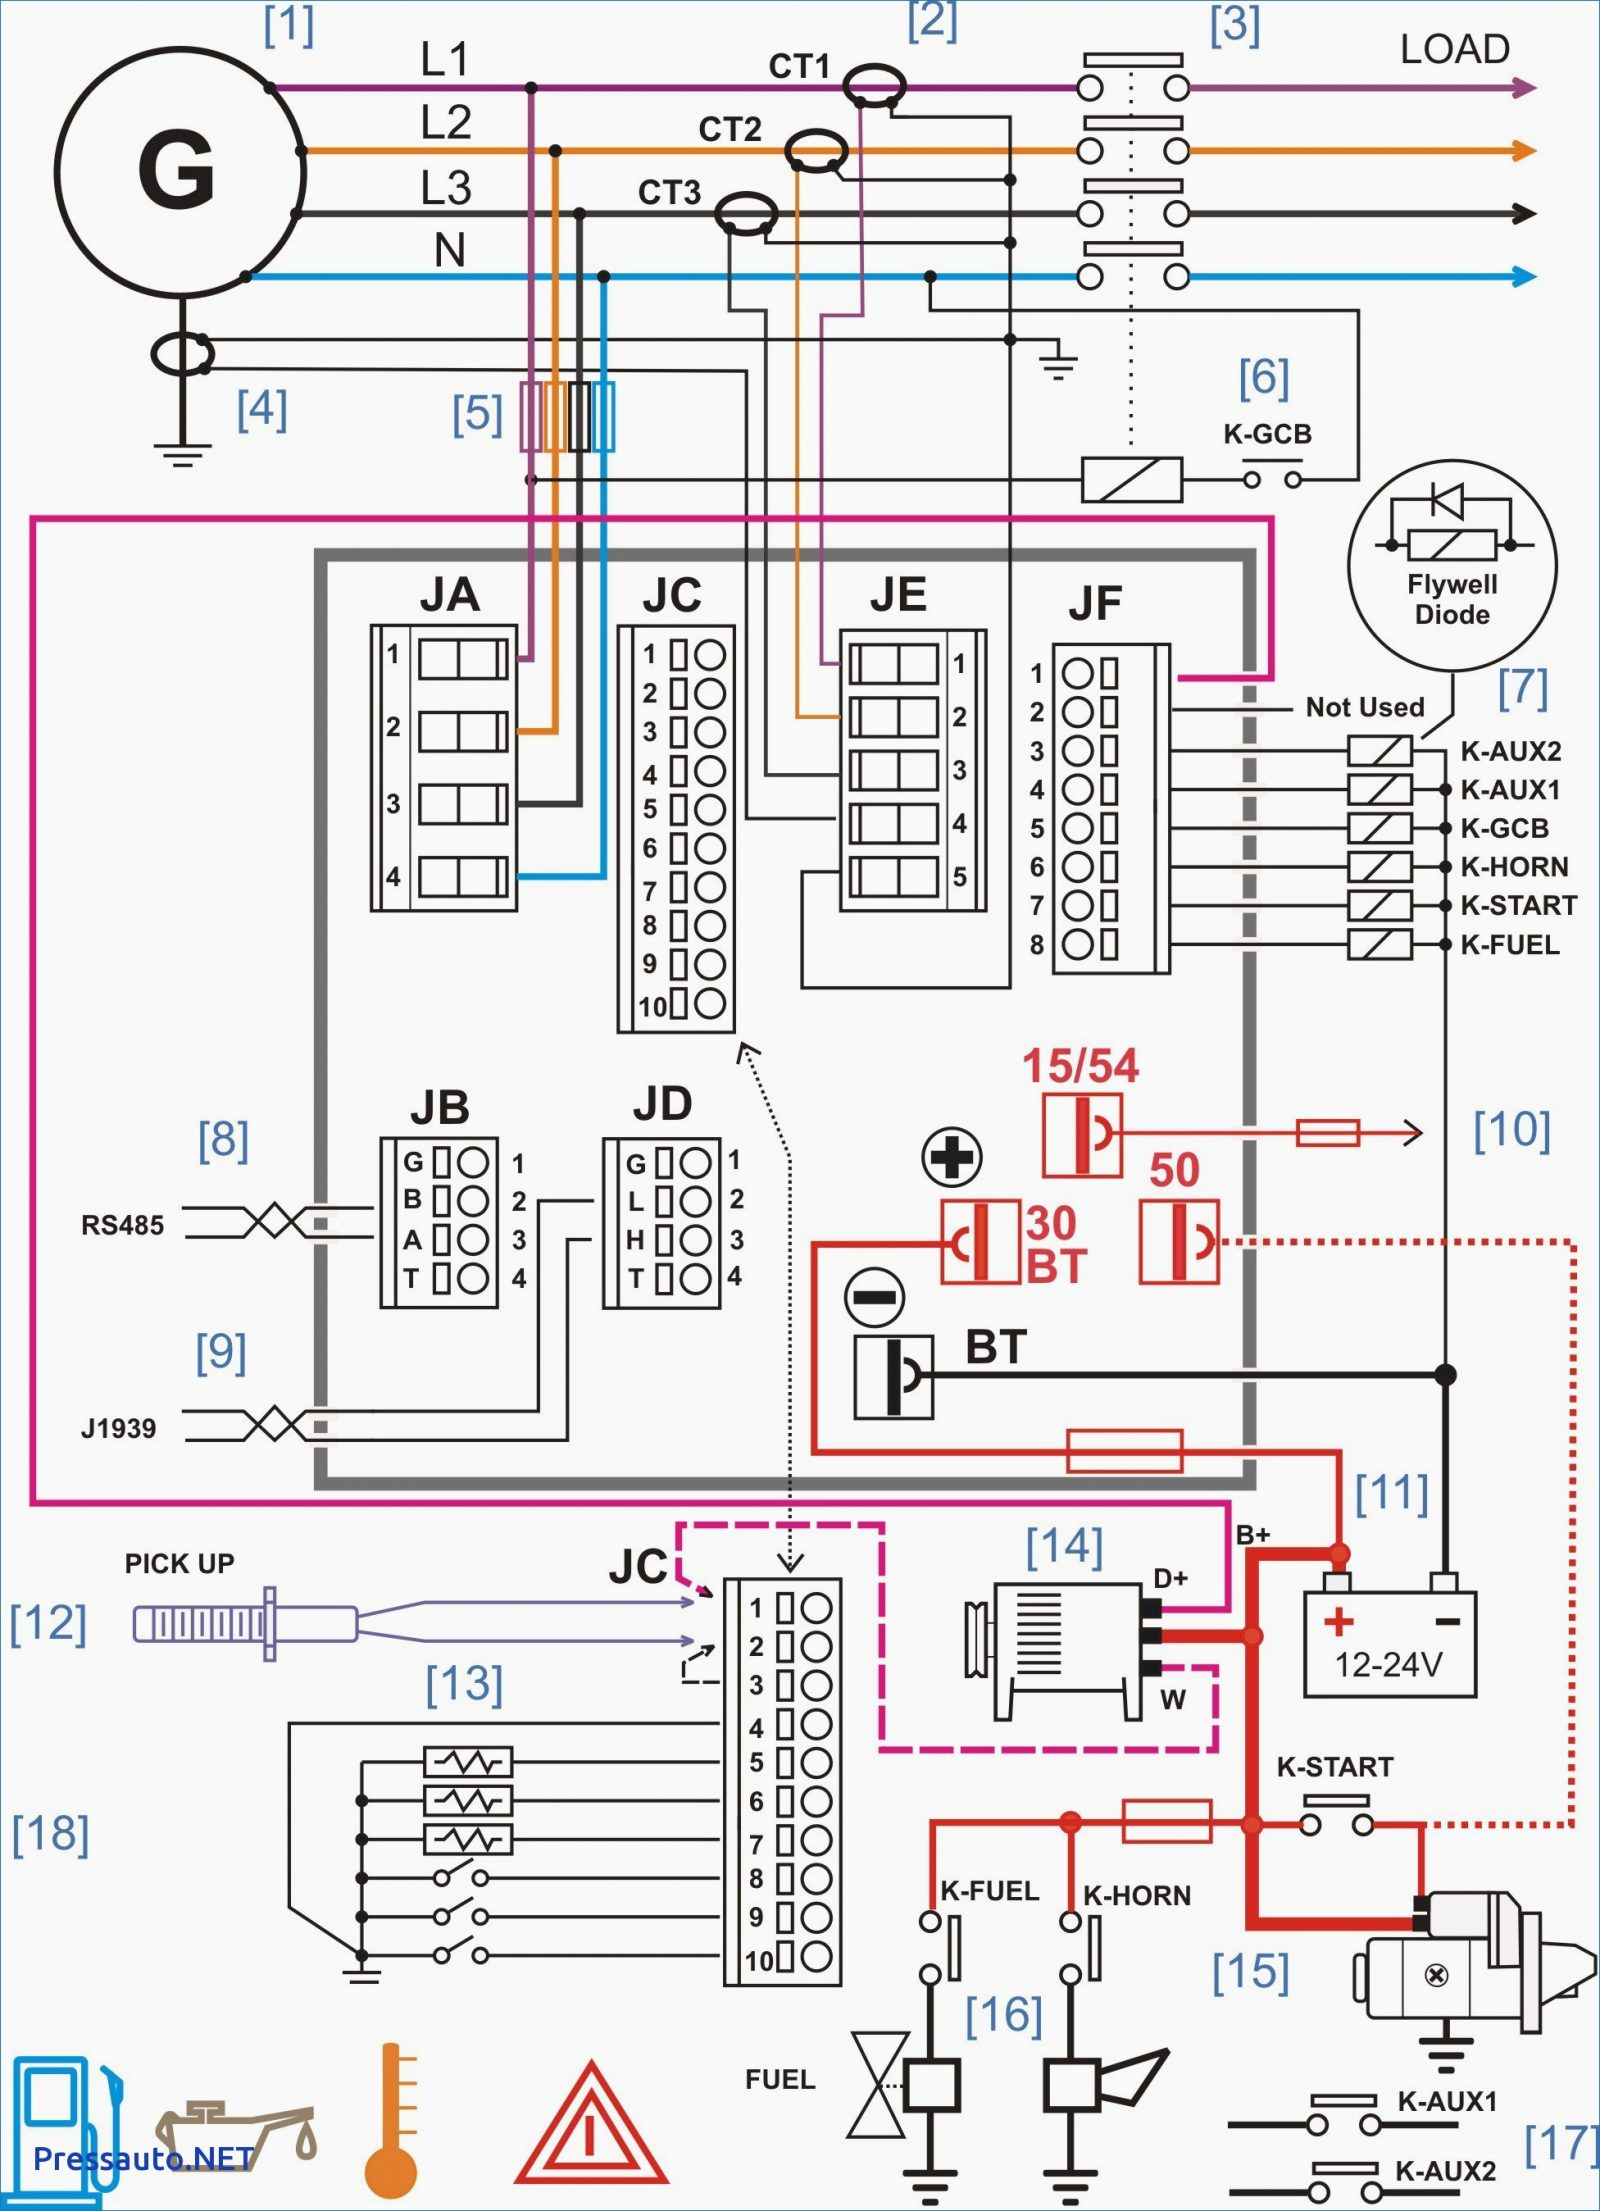 asco 7000 series automatic transfer switch wiring diagram Collection-Asco 7000 Series Automatic Transfer Switch Wiring Diagram New Diagramuto Transfer Switchts Workingnd Control Panel Wiring 15-c